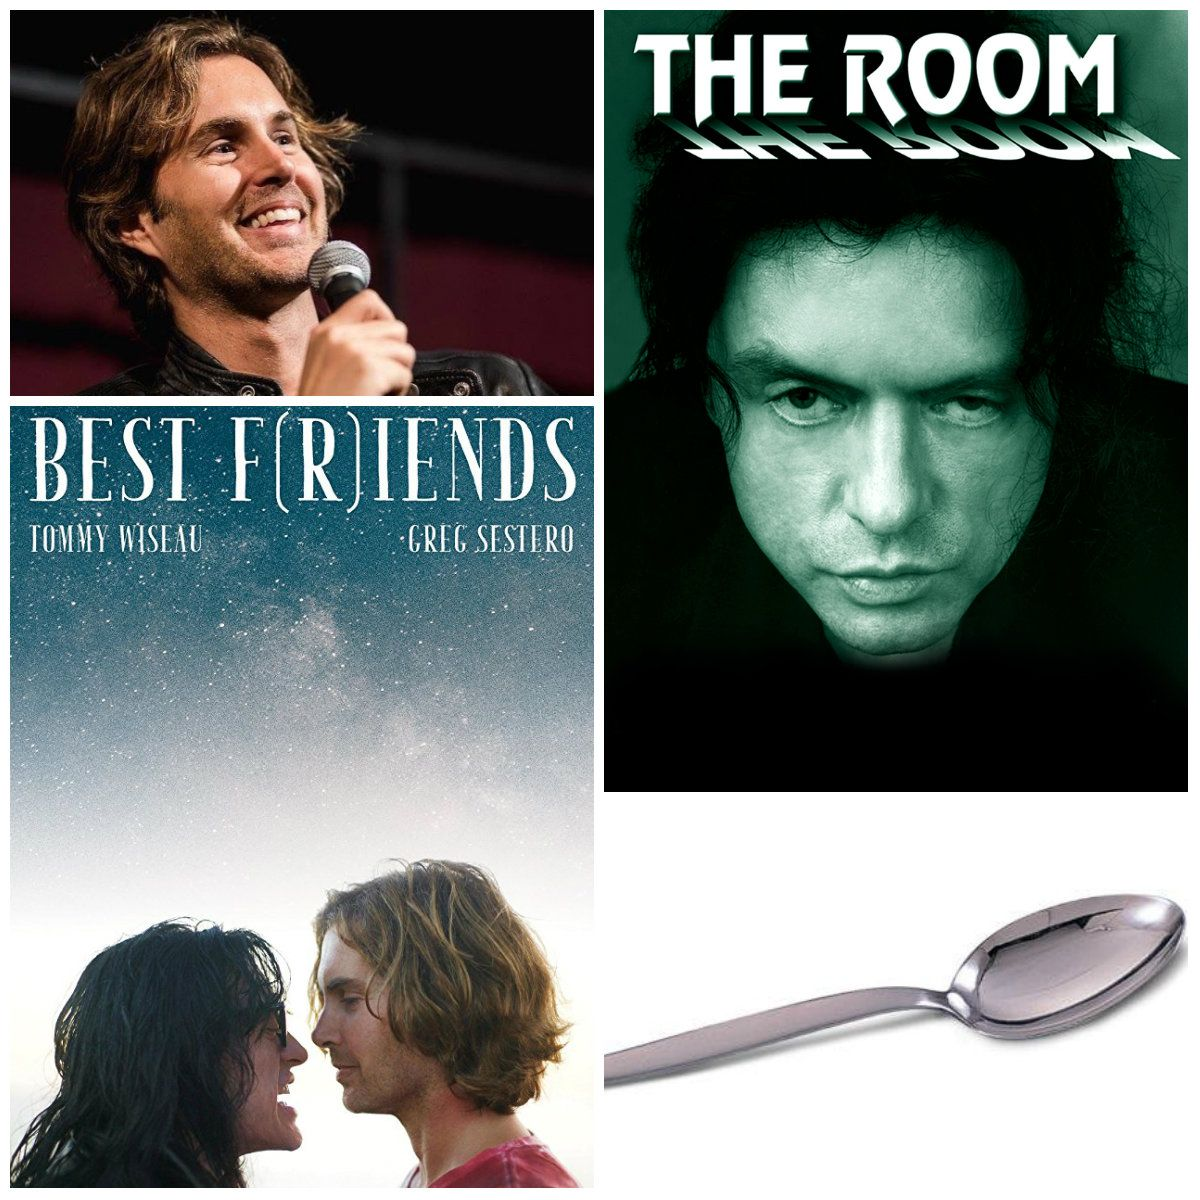 Pin By Bihter Kardes On Are The The Best Directors Ever Best Director Best Friends Greg Sestero